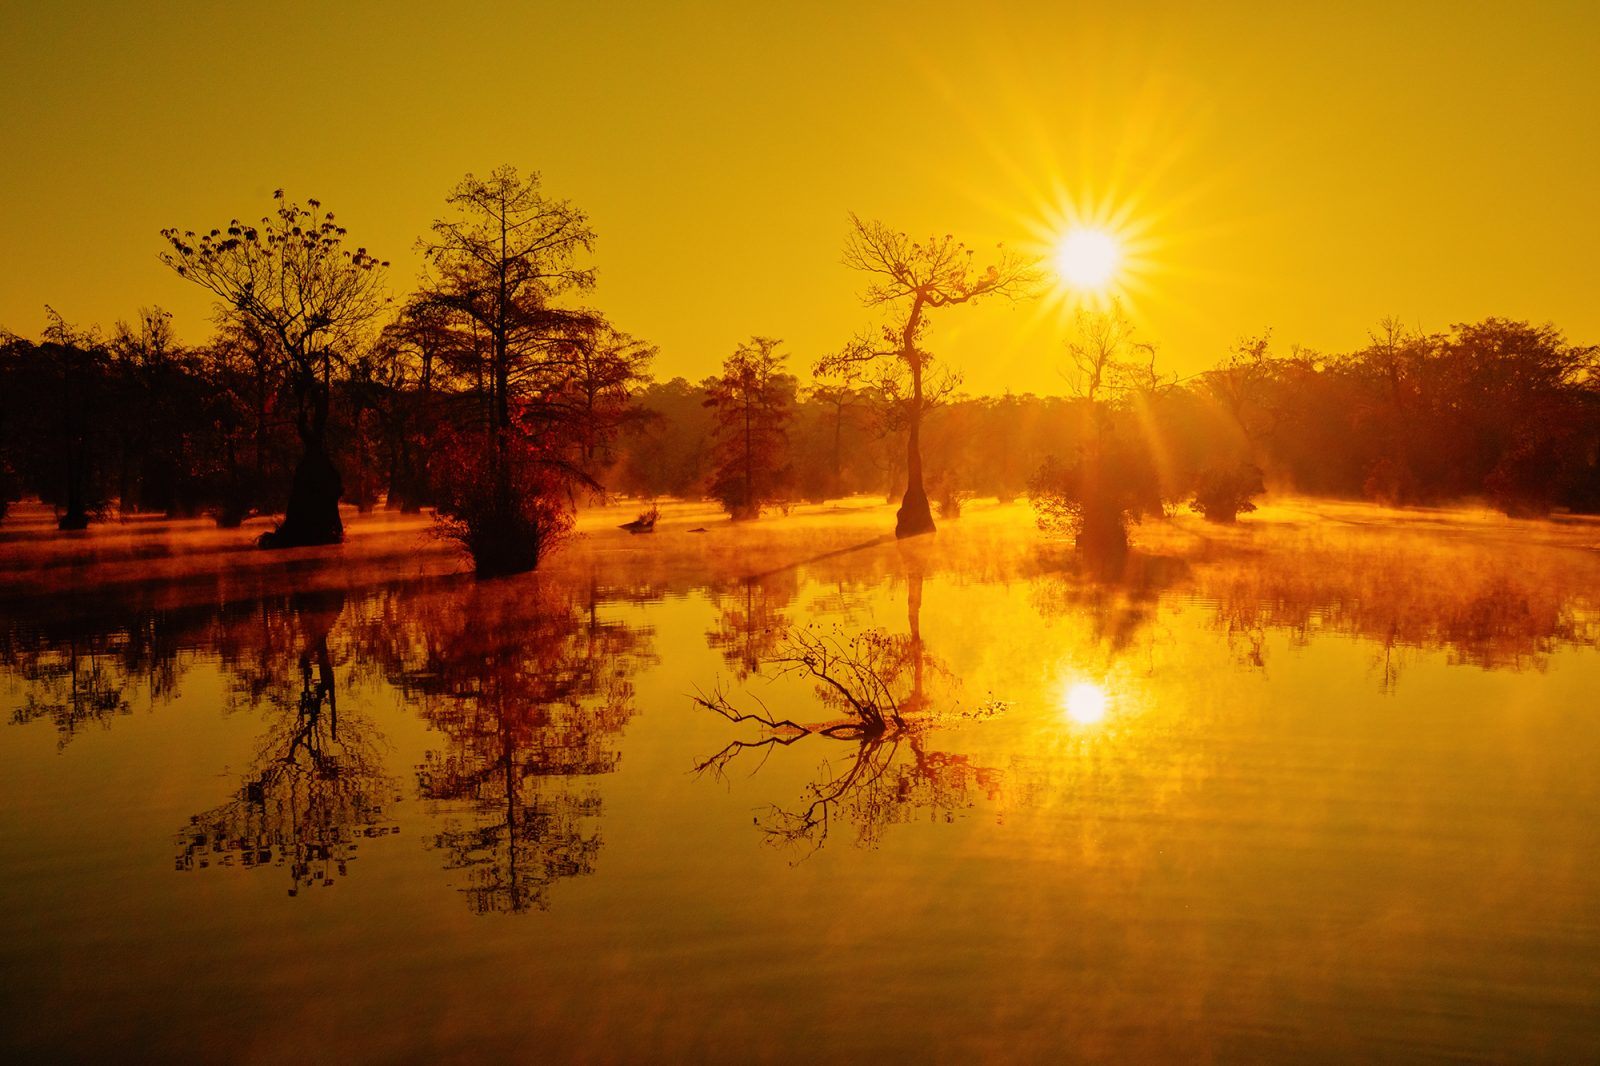 A pond of fog rising in the morning sun